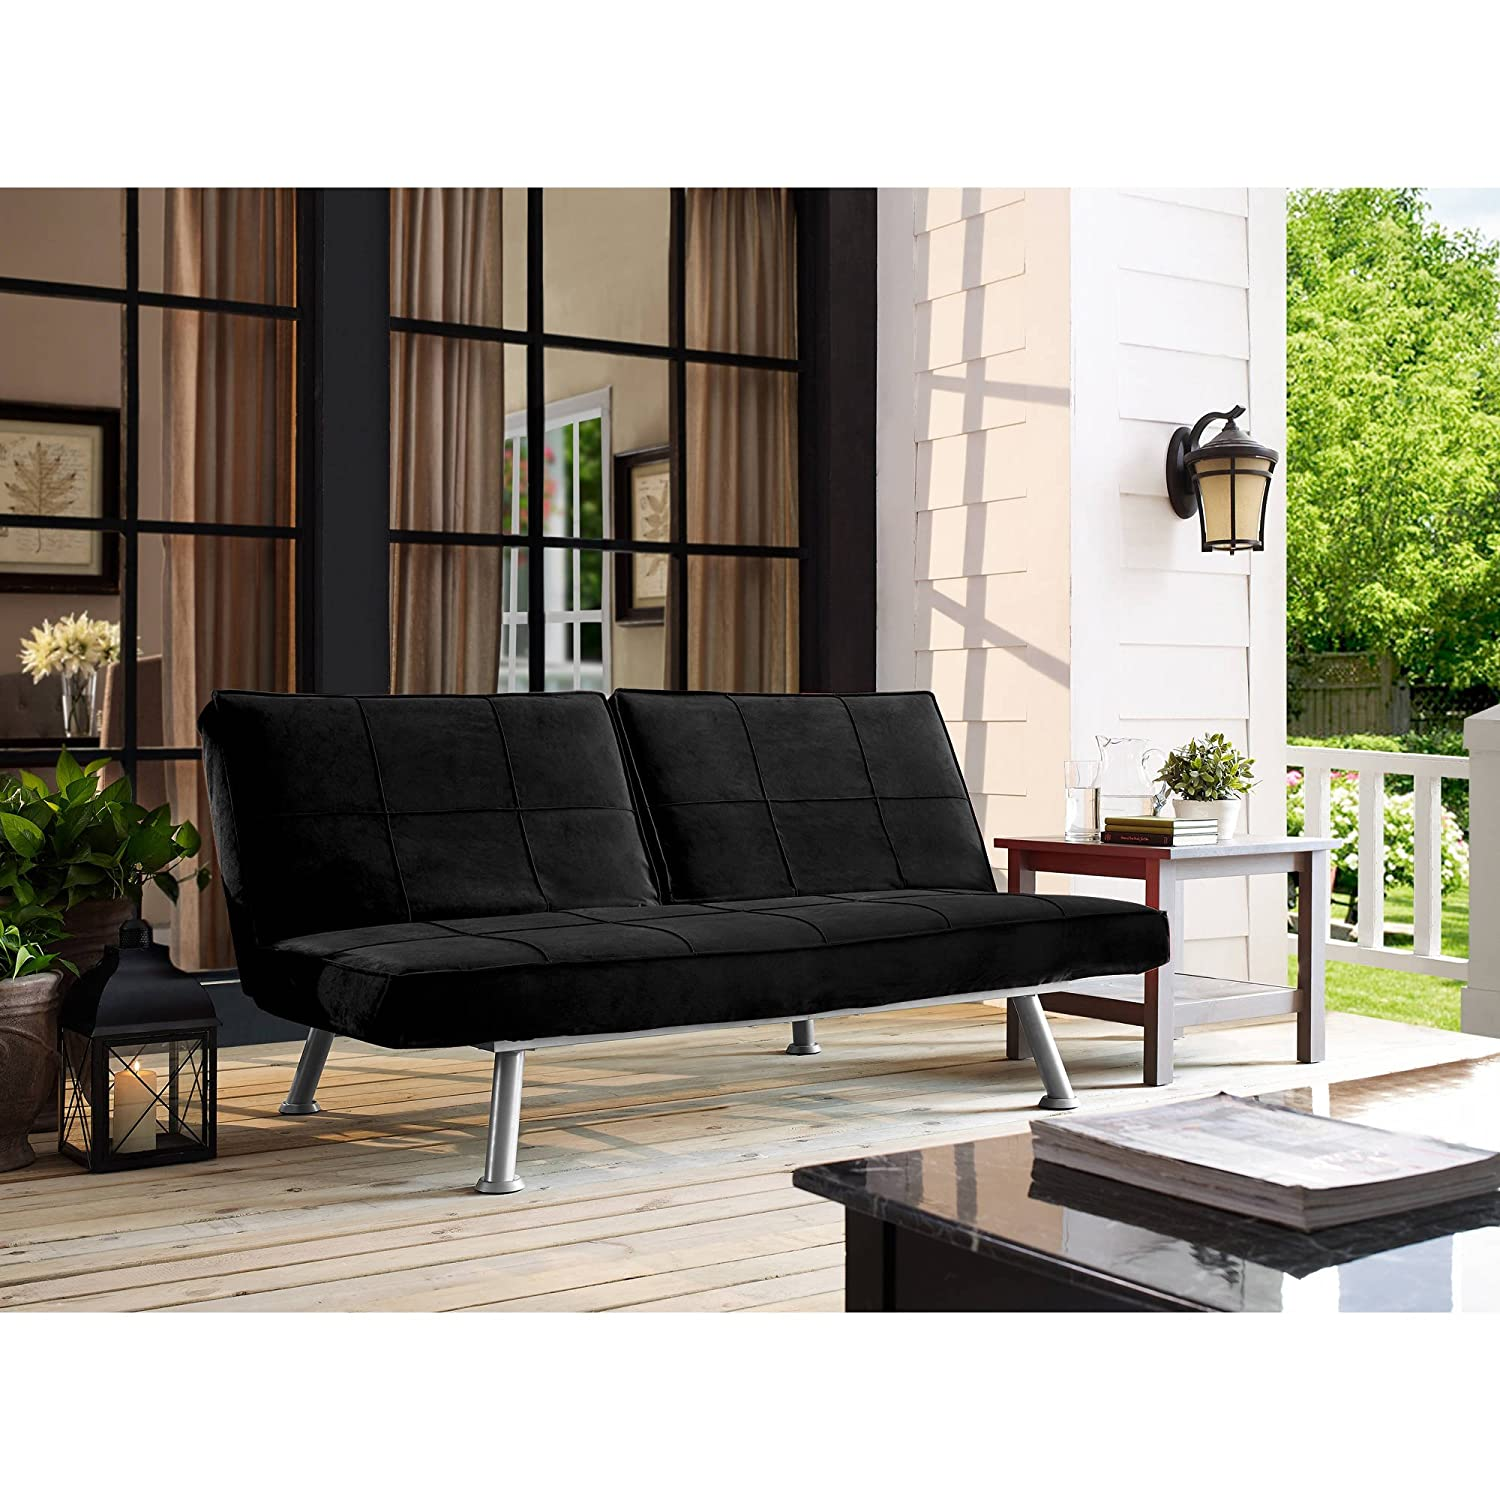 Living room sofa black finish 4 seat functions metal frame and legs silver powder coated finish rectangular stitching bundle with our expert guide